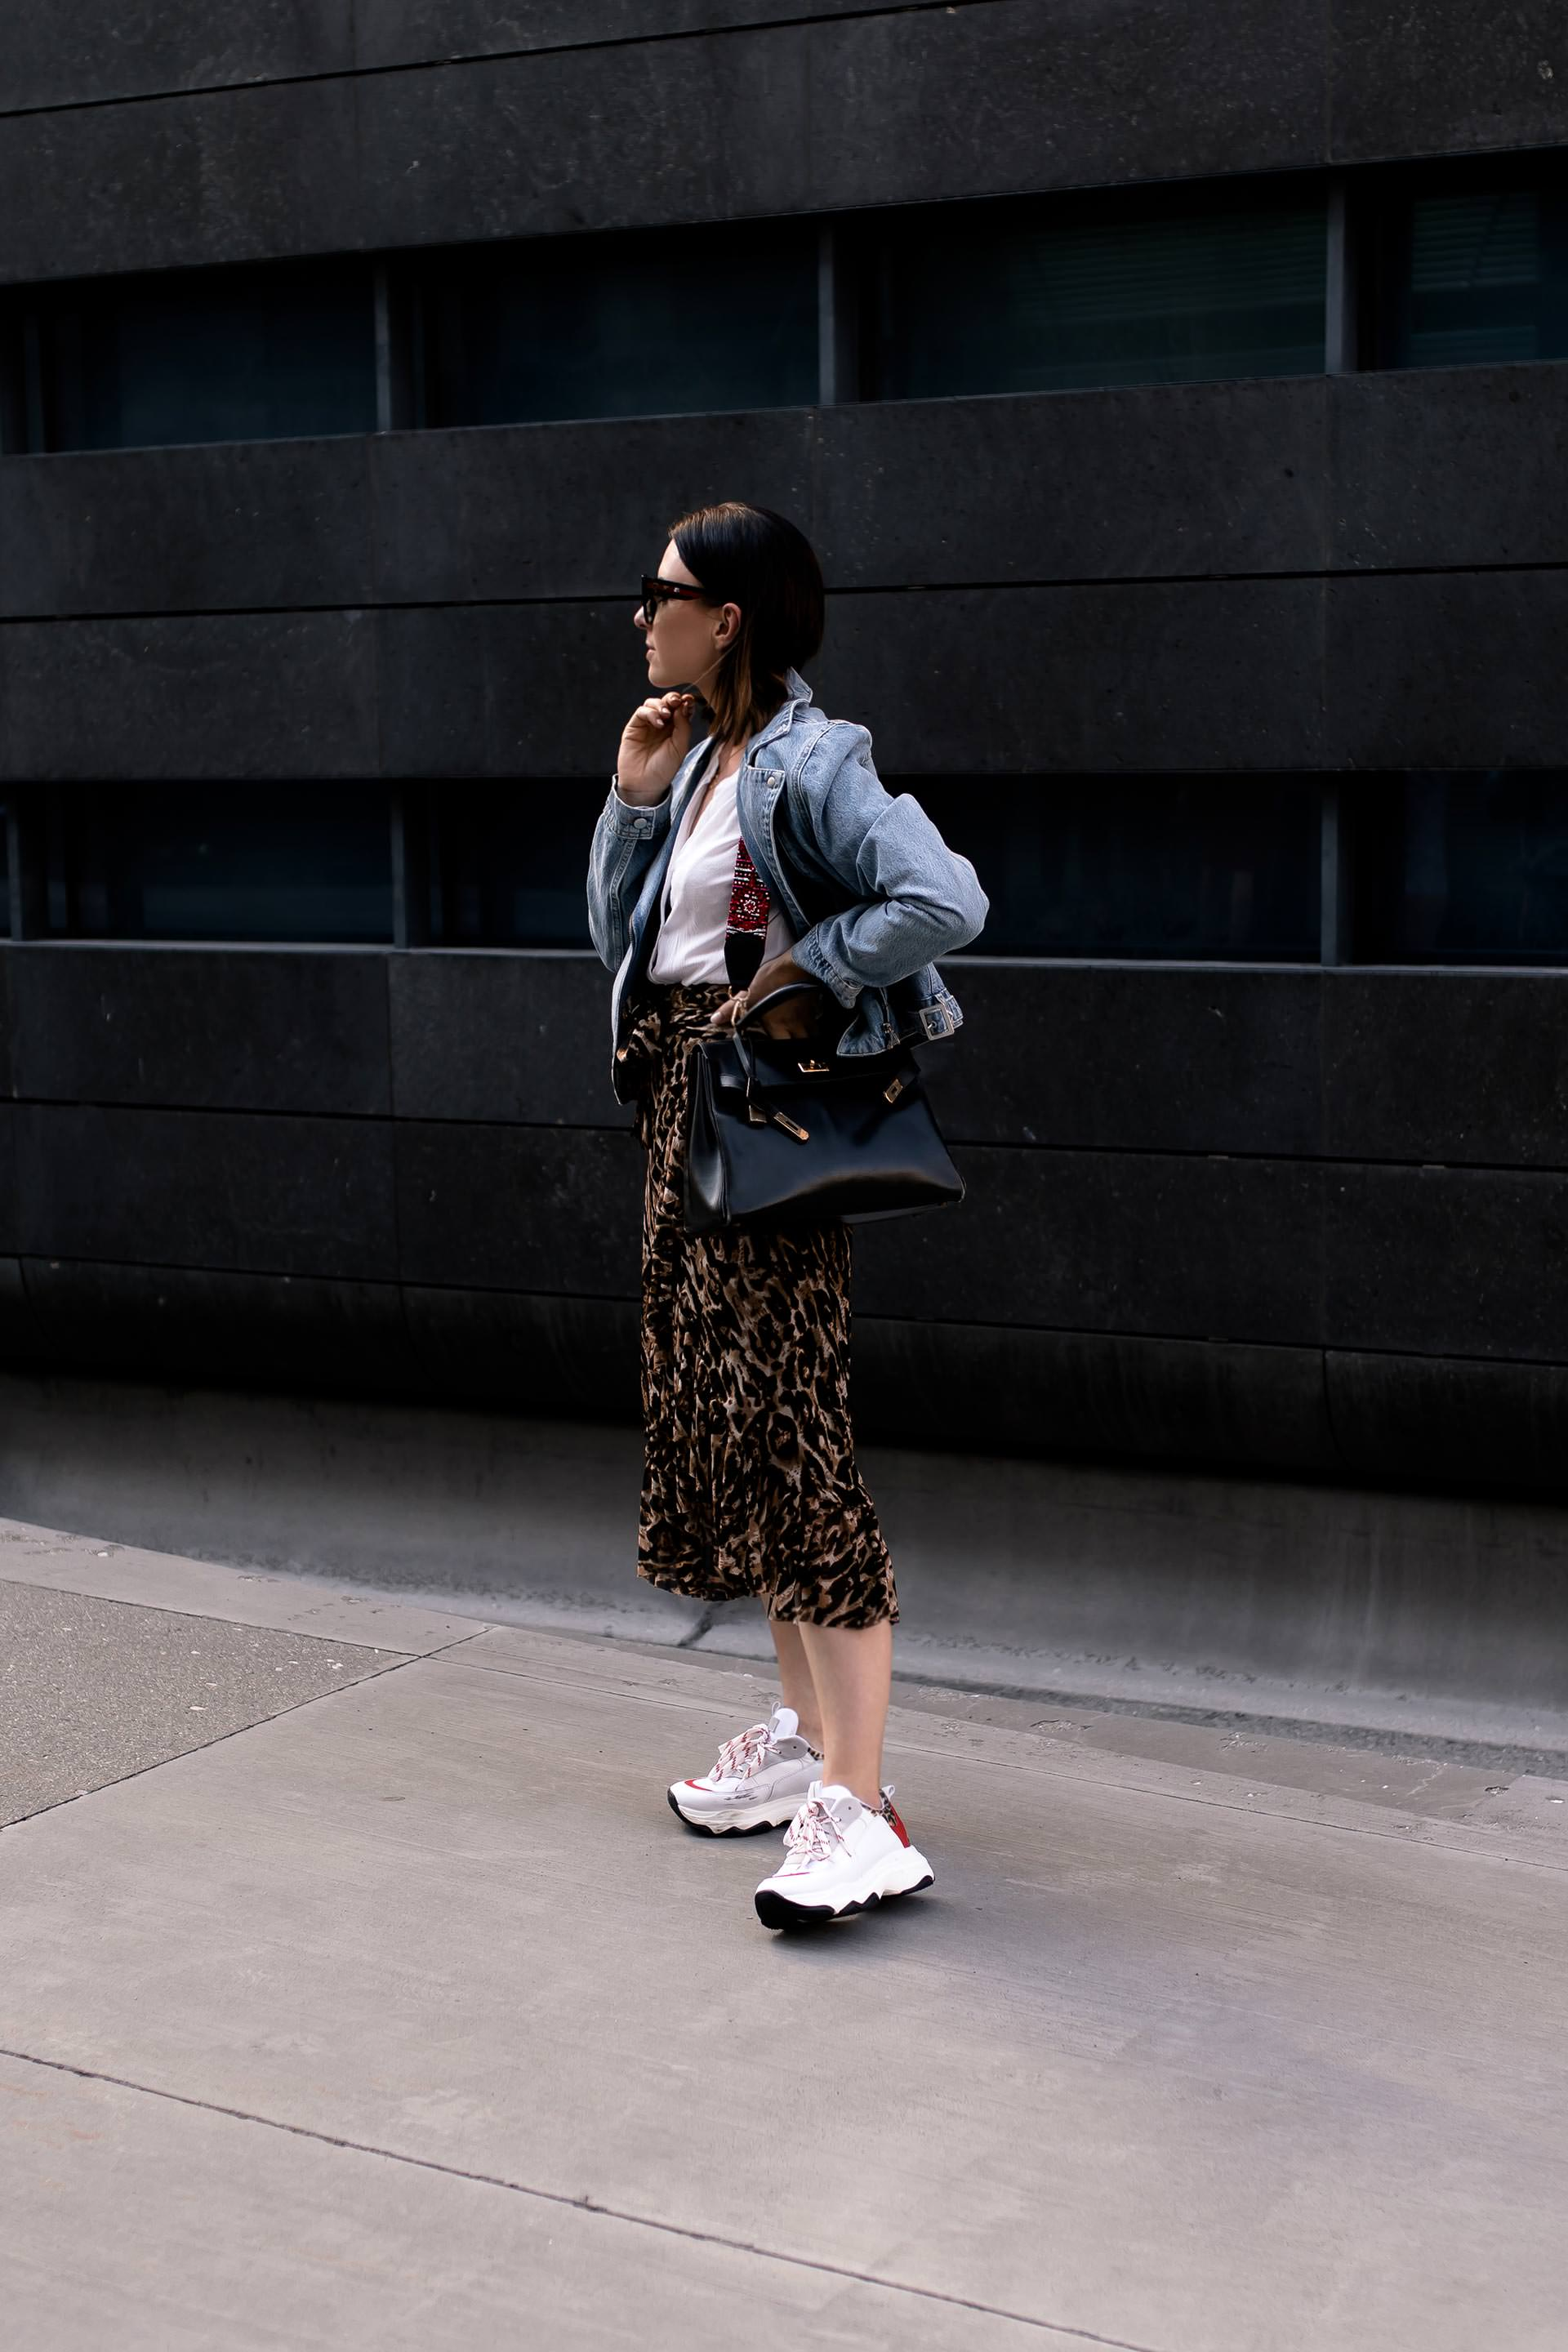 enthält unbeauftragte Werbung. Leo Print kombinieren, how to style leopard print, how to wear, how to style, leopardenmuster kombinieren, leopard print styling, styling tipps, mode tipps, ist leomuster noch in, leo print outfit, outfit idea, outfit mit leo muster, Spätsommer Outfit, Modeblogger, Fashion Magazin, Chunky Sneakers, Hermes Kelly Bag, www.whoismocca.com #kellybag #hermes #chunky #ootd #herbstmode #styling #leoprint